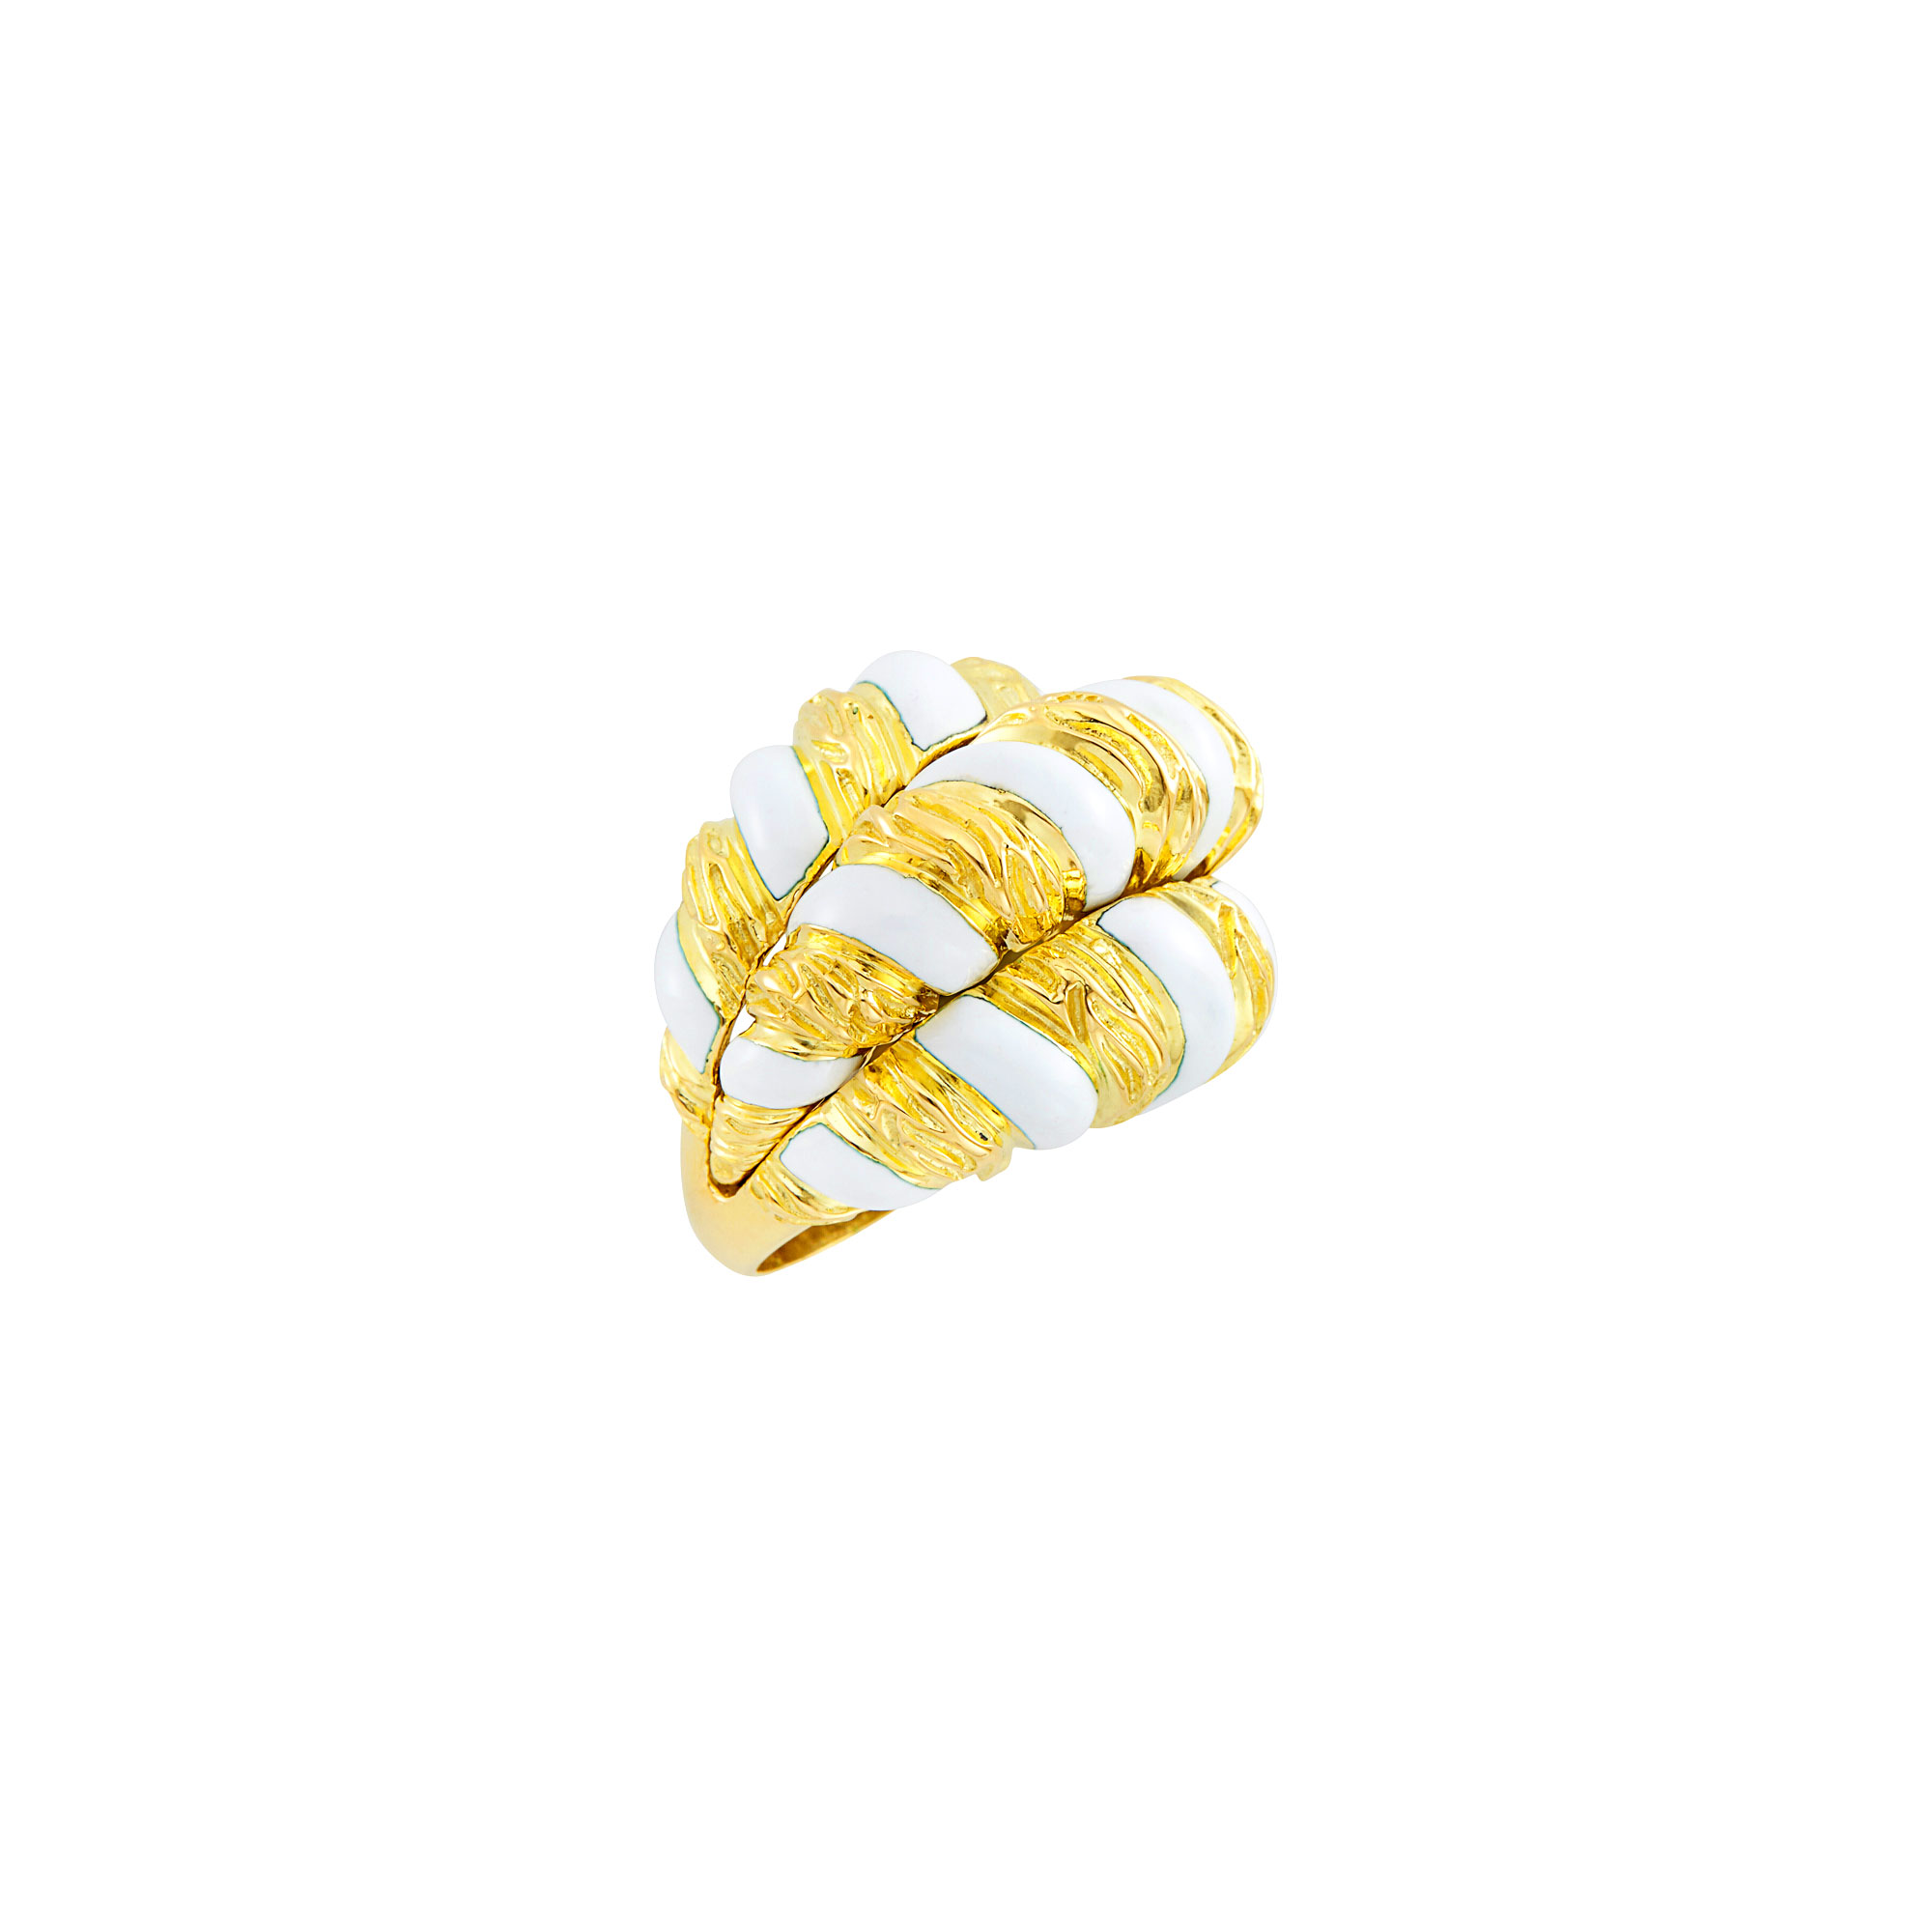 Lot image - Gold and White Enamel Bombé Ring, David Webb